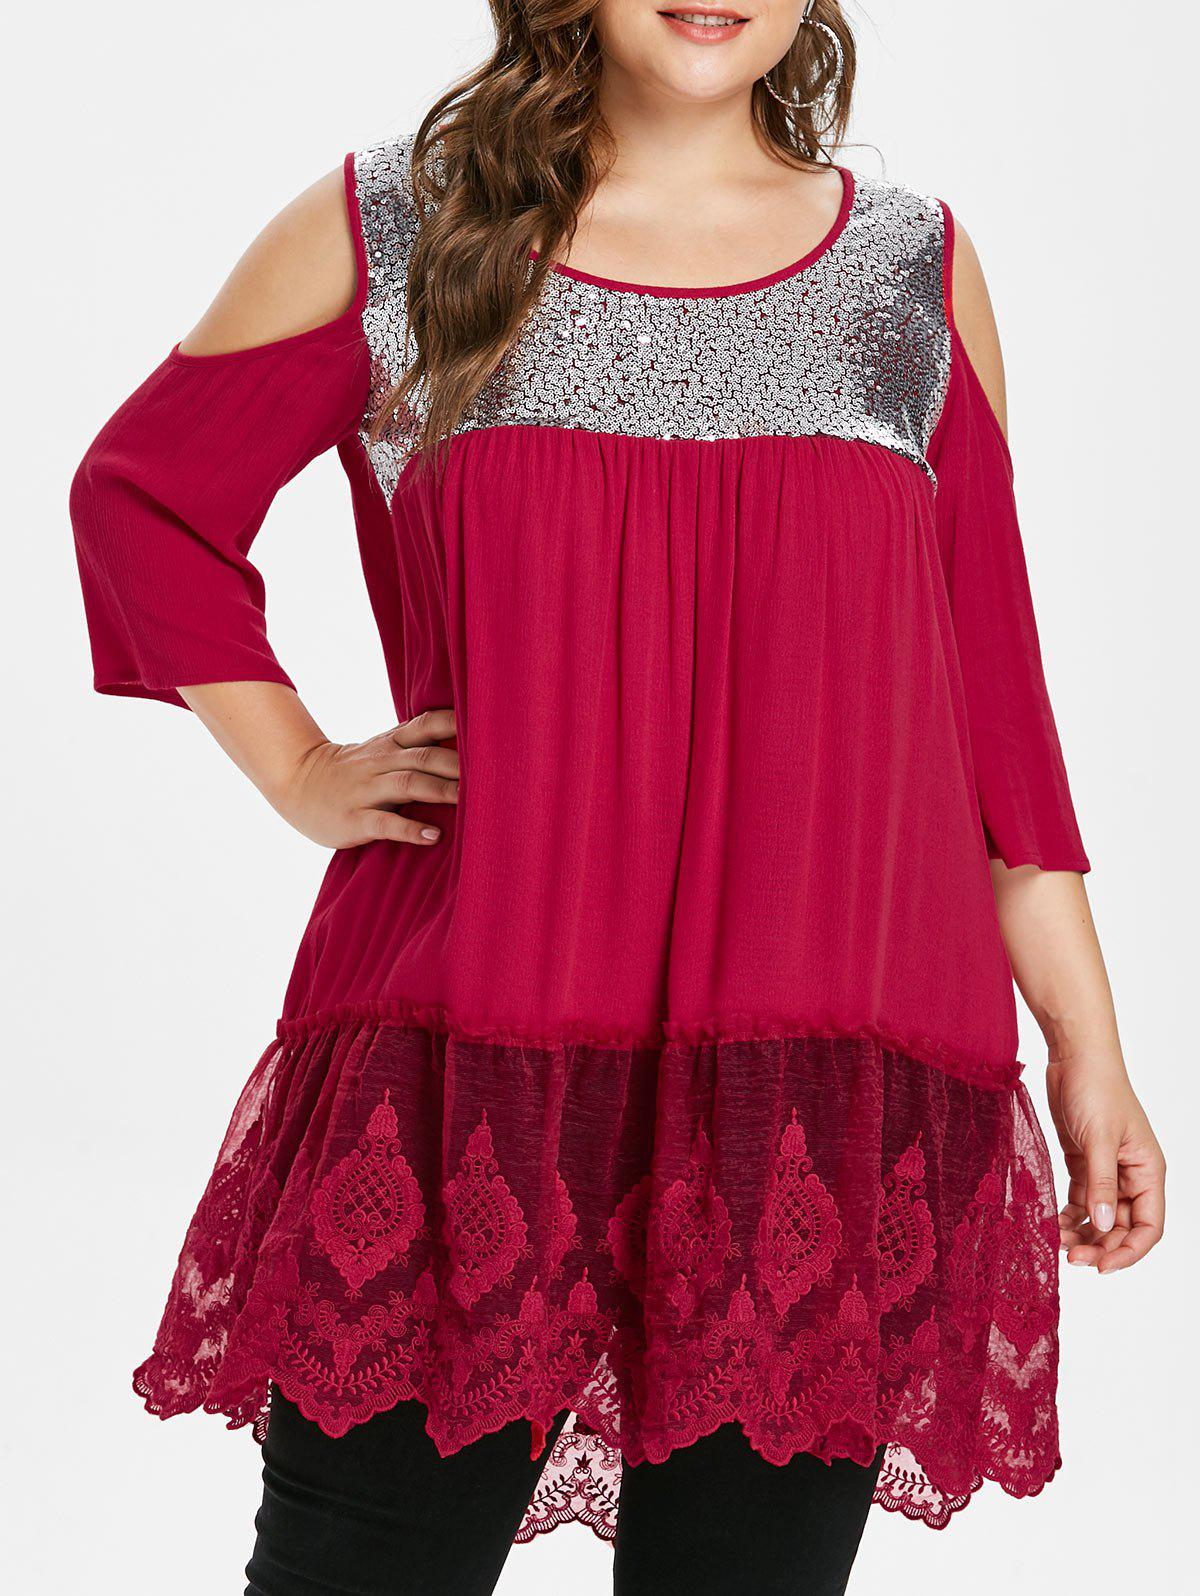 Lace Hem Plus Size Back Cut Out Blouse - FIRE ENGINE RED 1X